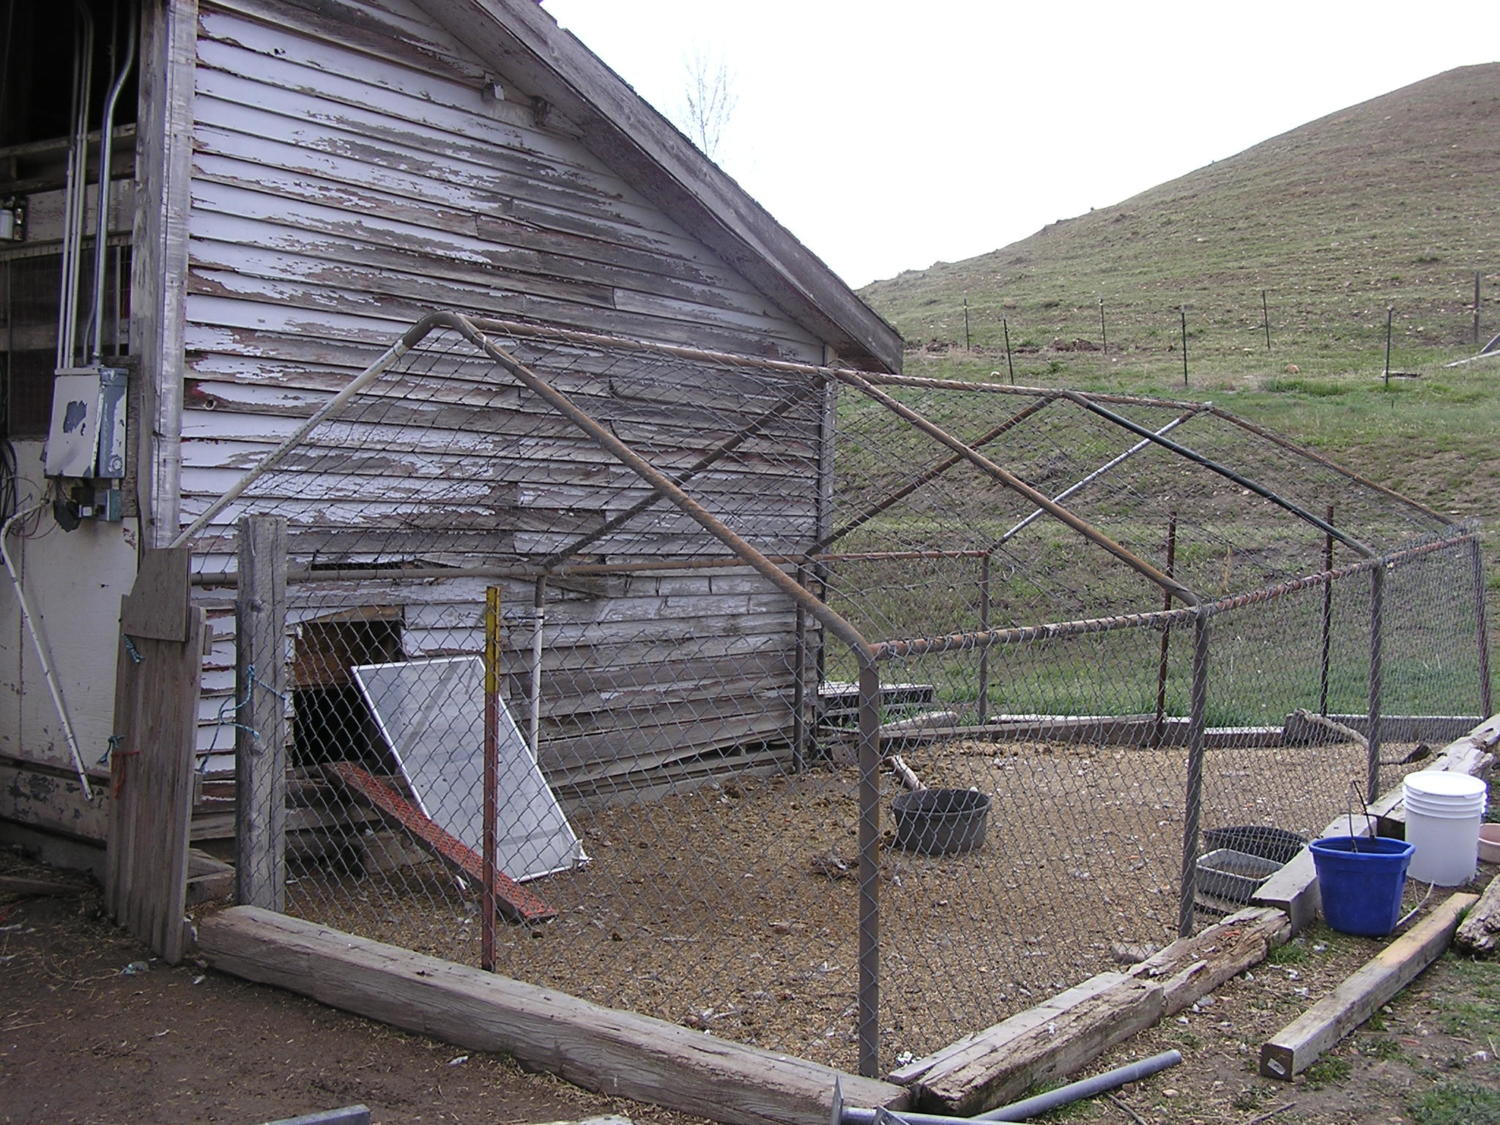 Percheron chick's photos in 6x8 shed conversion guidance, please